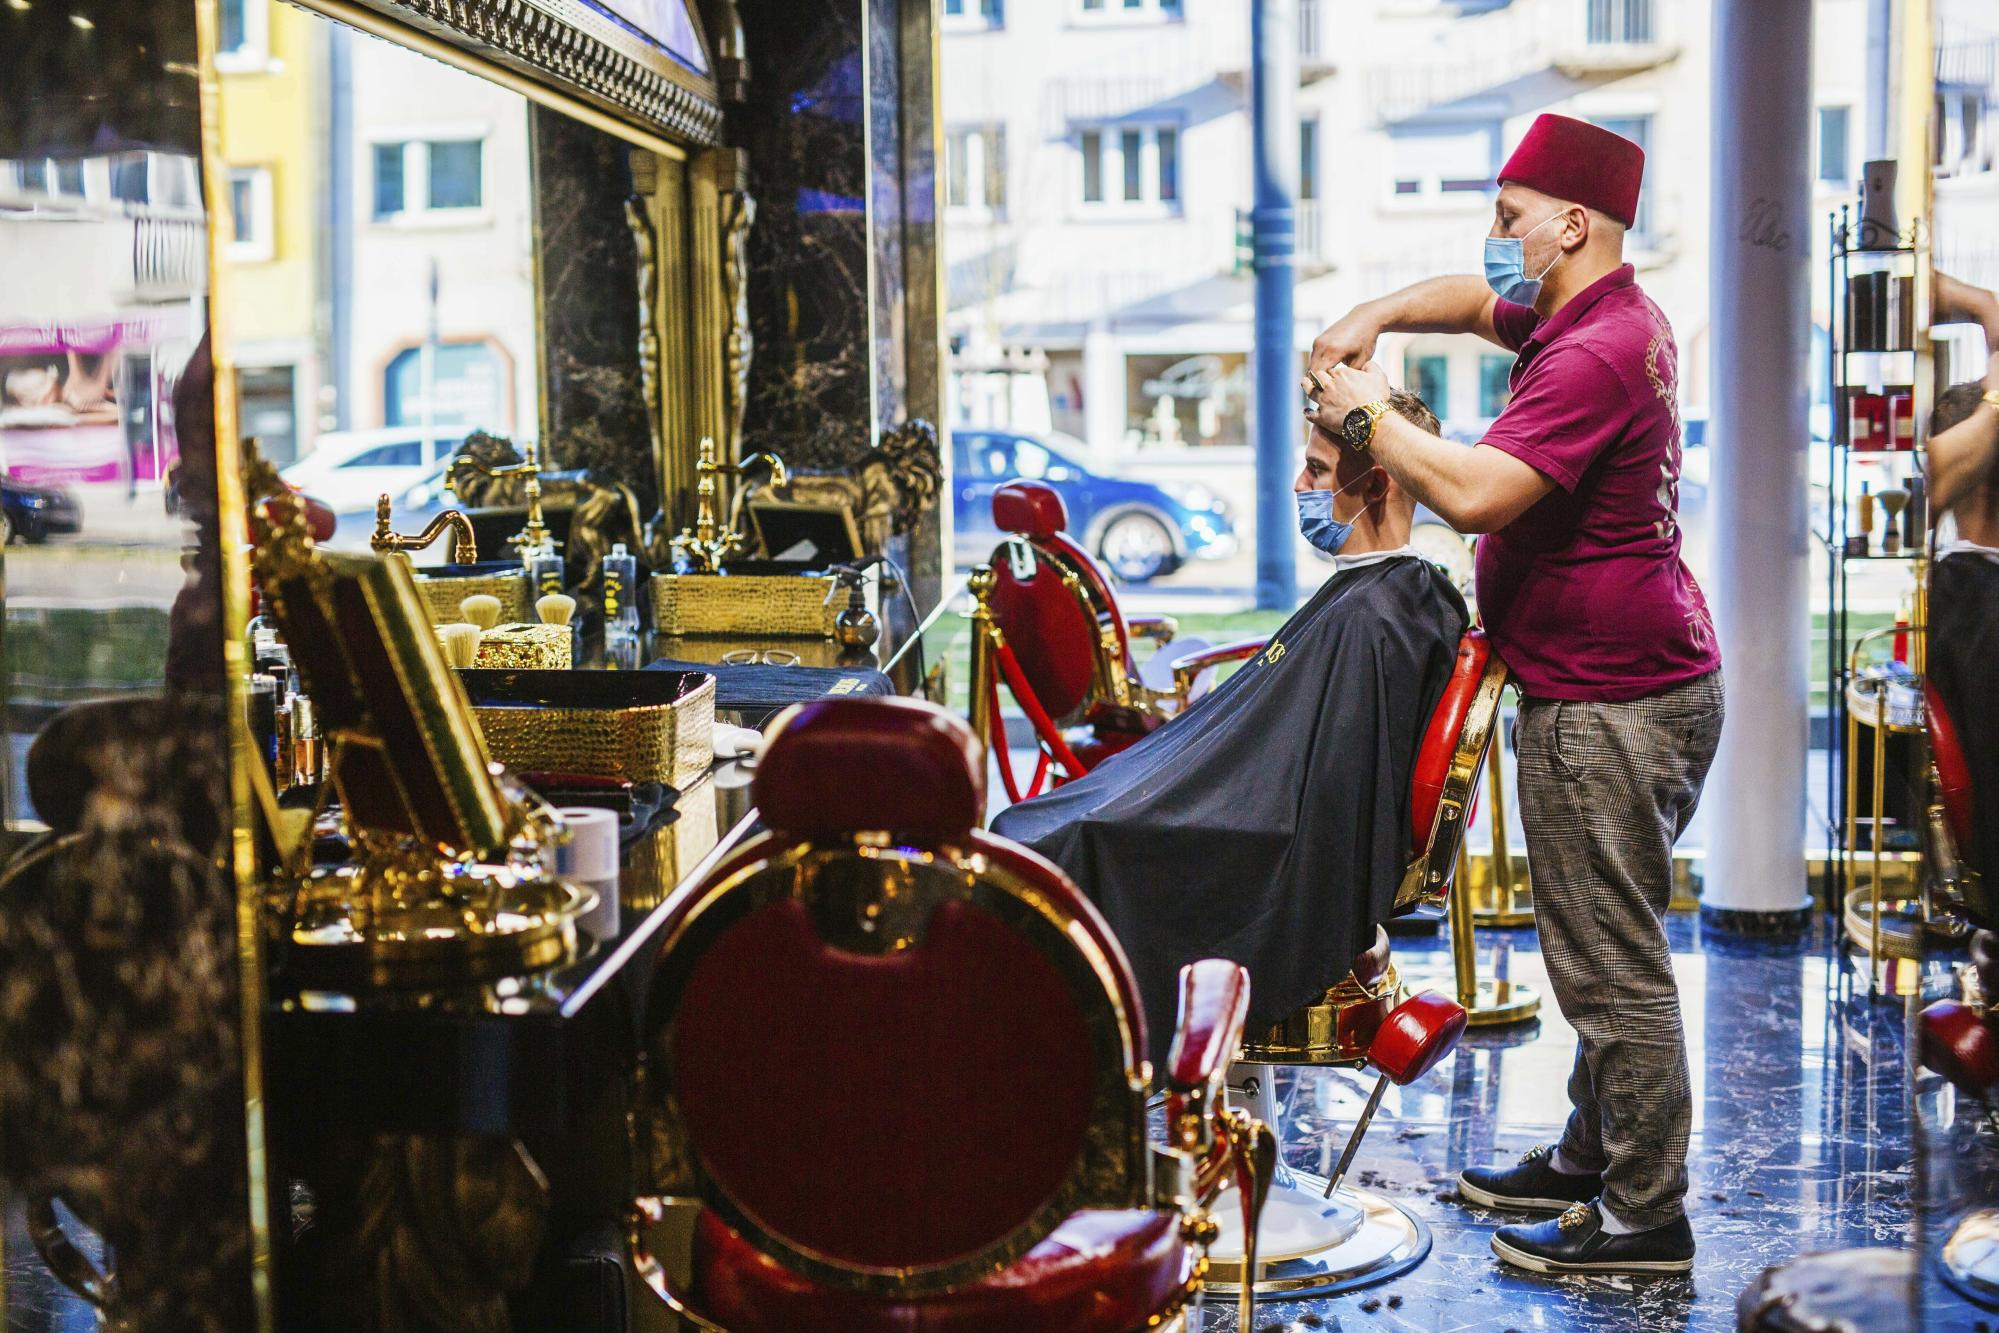 Germany reopens hairdressers, considers way ahead on virus